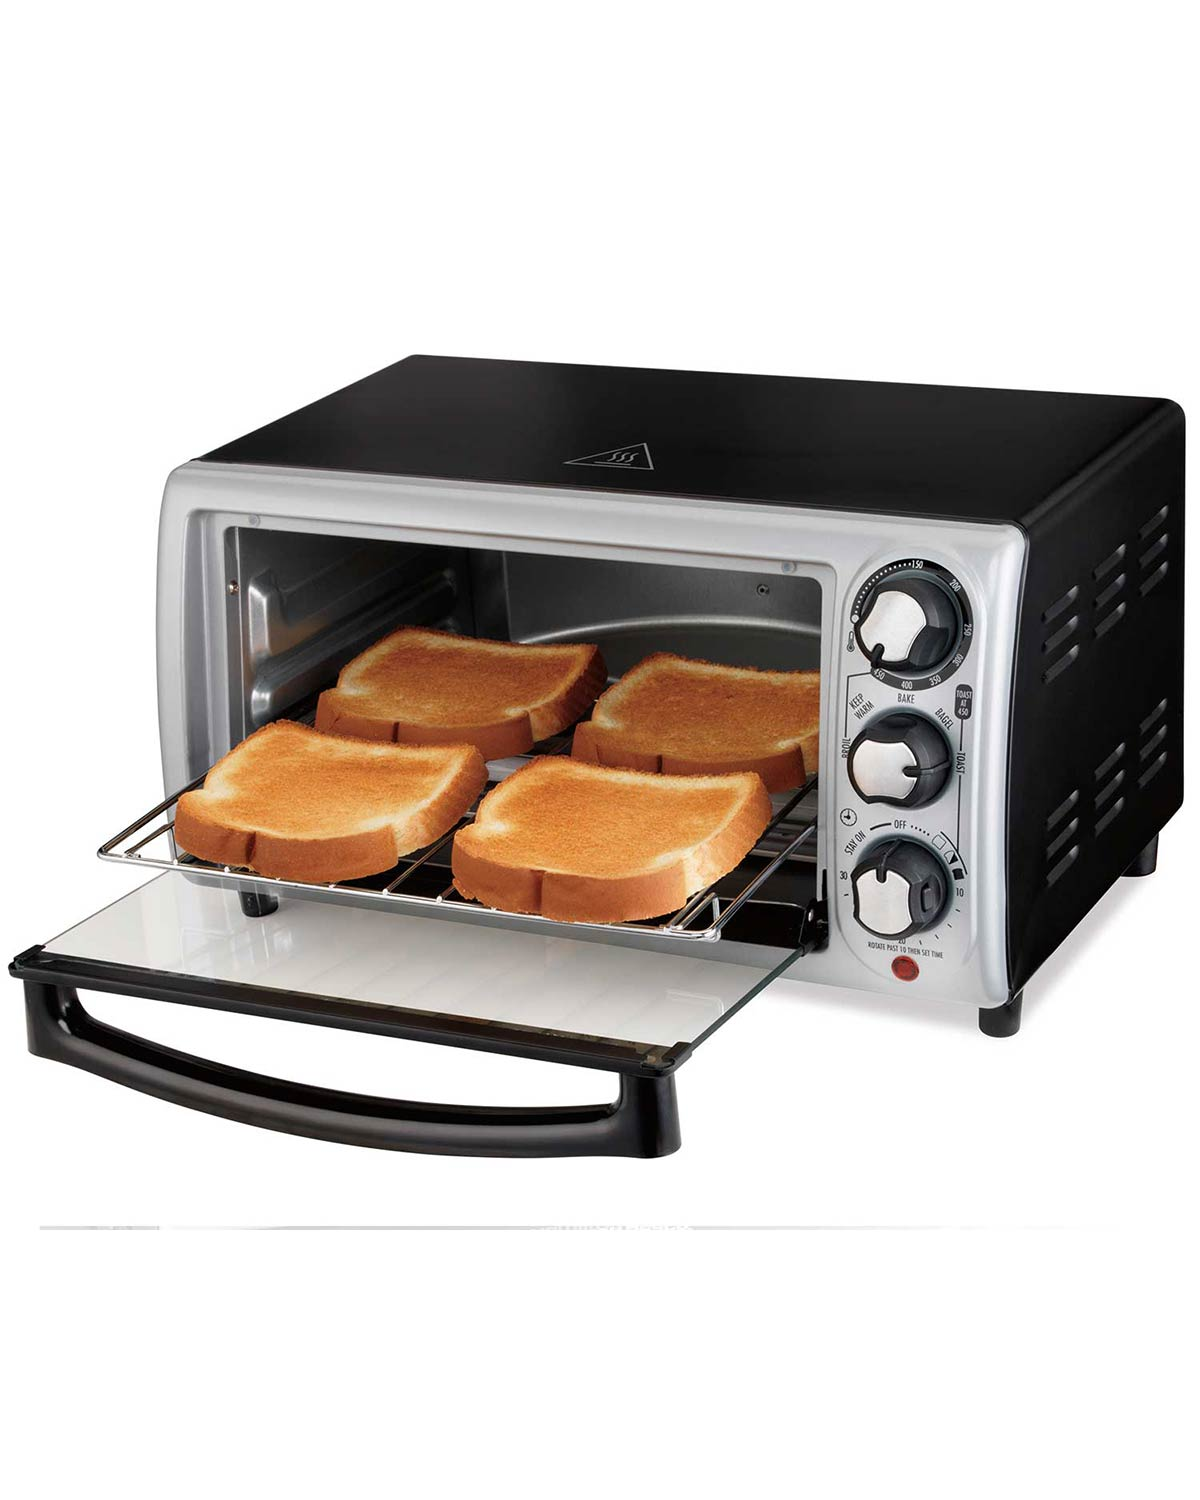 Toaster Oven (31142)